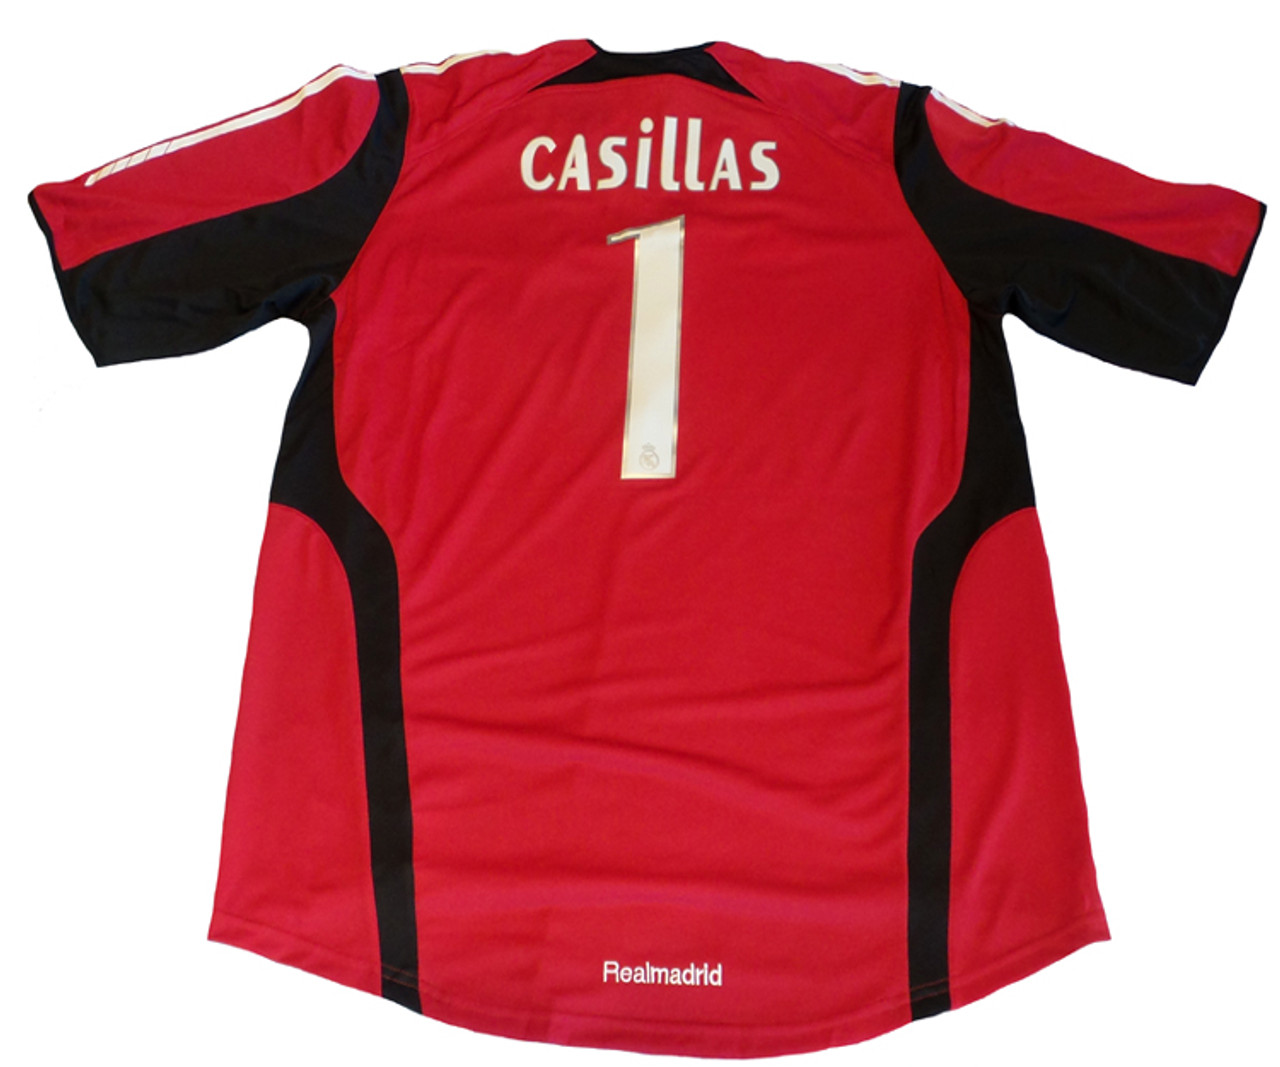 finest selection eda63 07486 ADIDAS REAL MADRID 2006 HOME `CASILLAS` G/K JERSEY RED